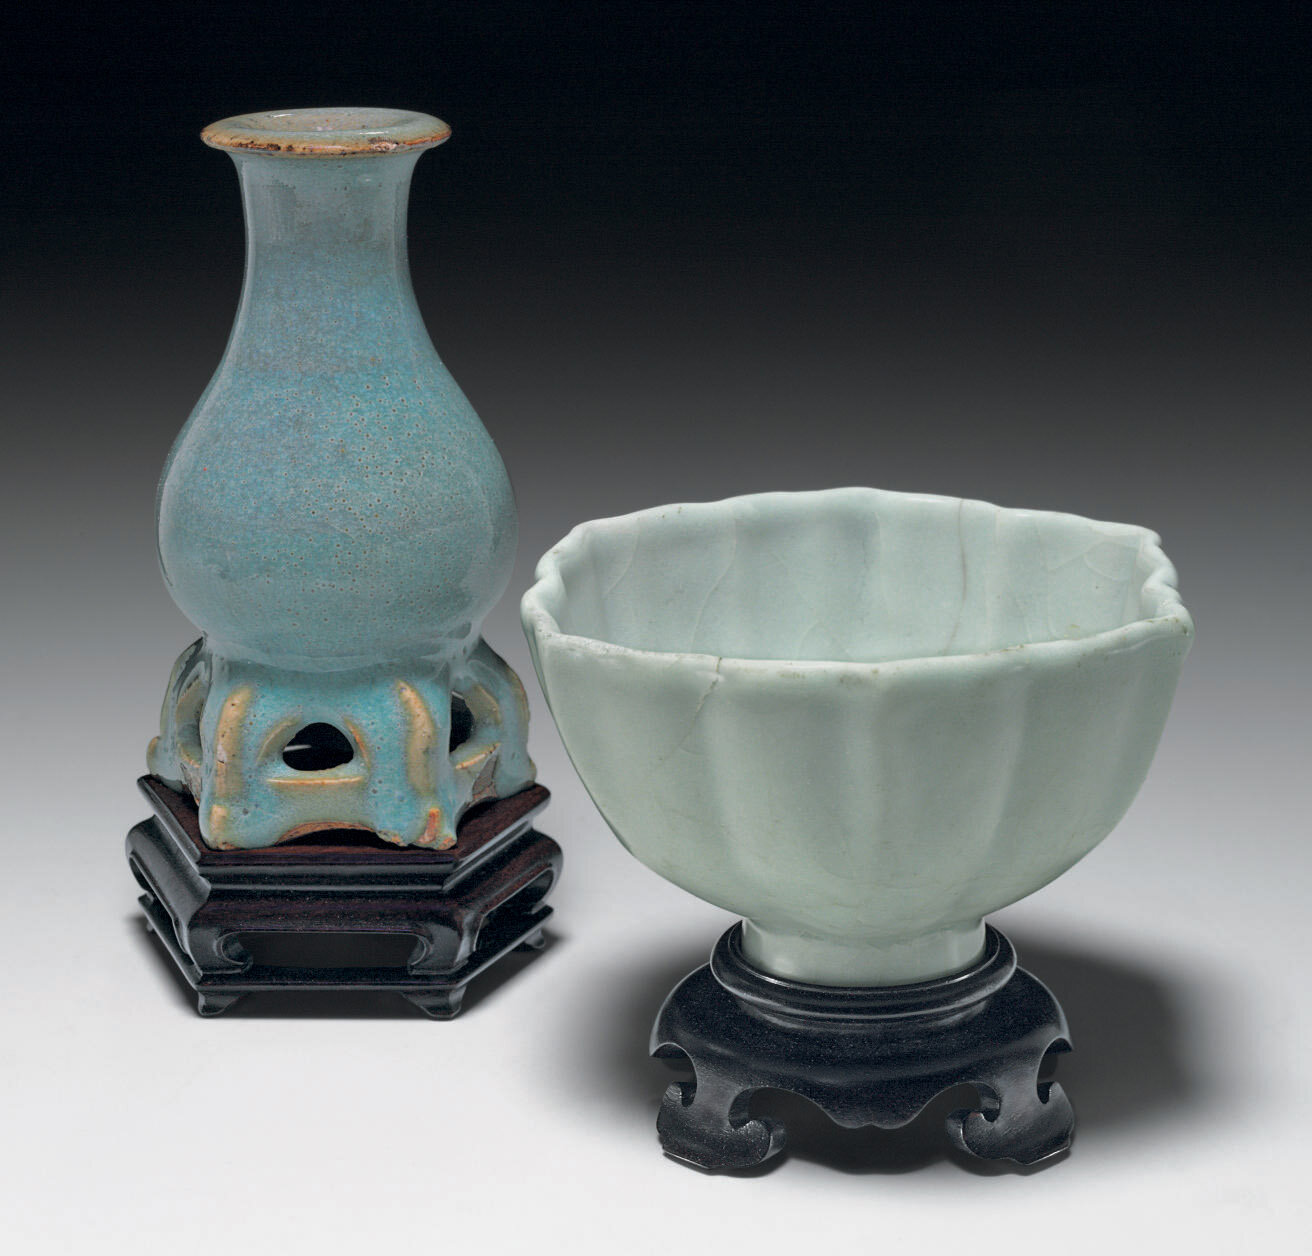 An unusual small Junyao vase, Jin-Yuan Dynasty, 13th-14th century